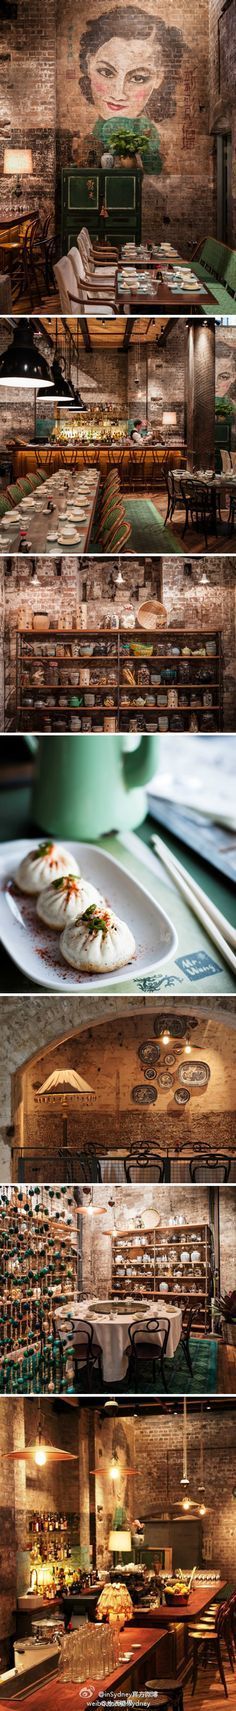 Chinese Old Shanghai Style   Restaurant inspiration   brick wall   dim sum   Industrial   Warehouse